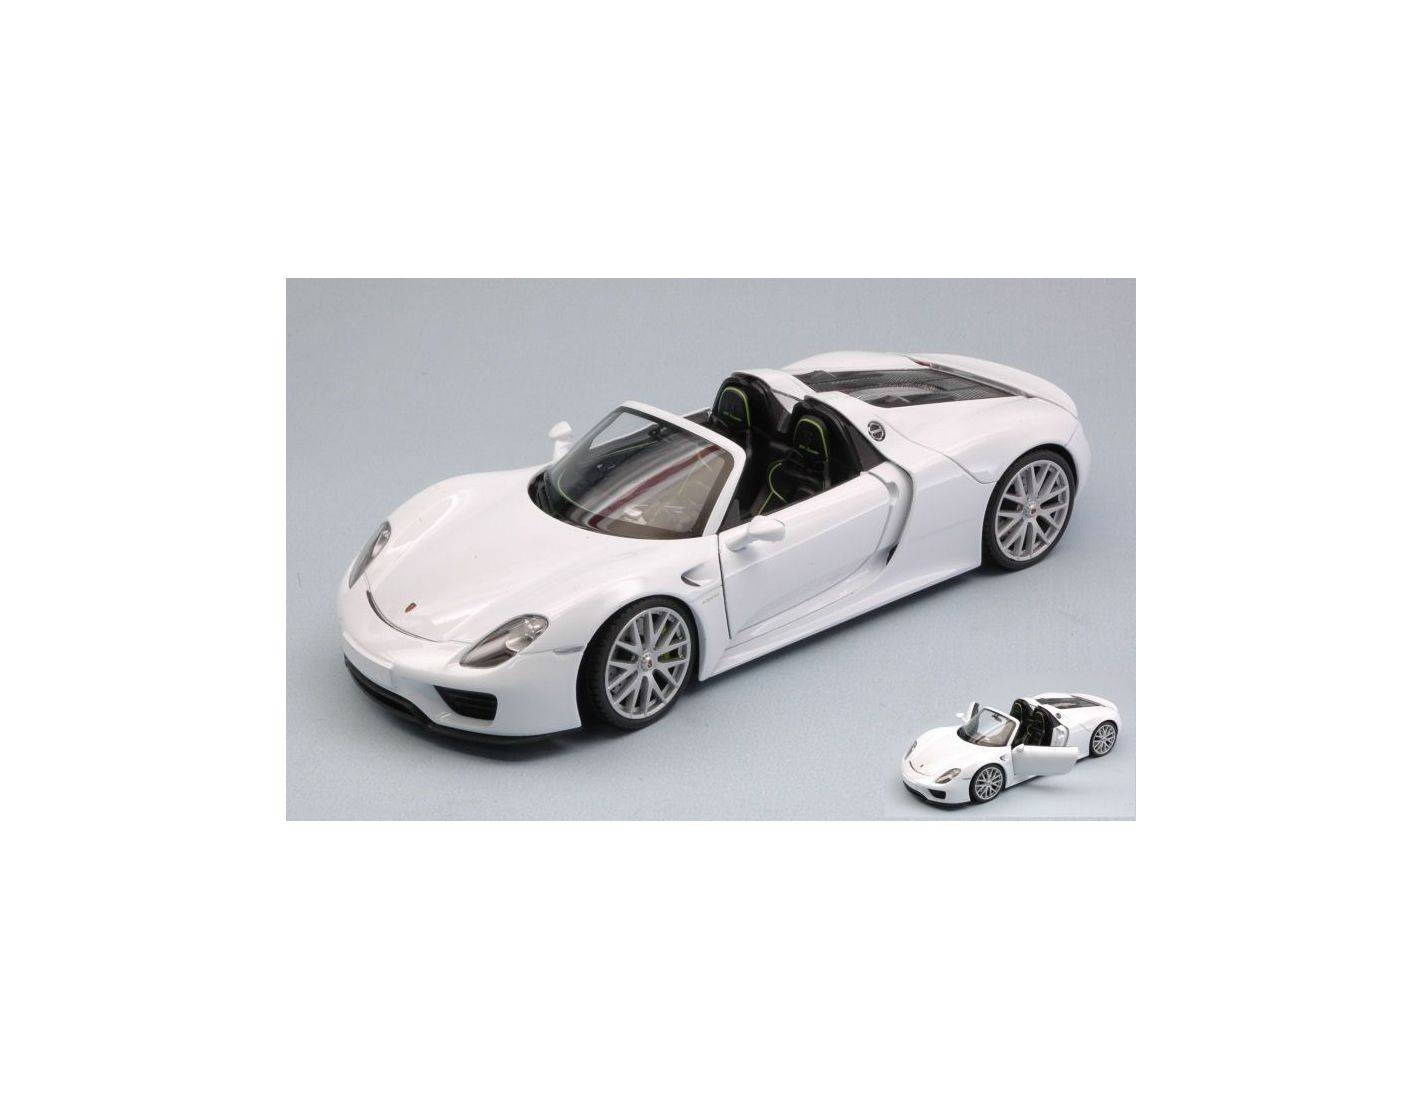 auto 1 24 welly we24055cw porsche 918 spyder 2013 white 1 24 modellino modellino shop. Black Bedroom Furniture Sets. Home Design Ideas